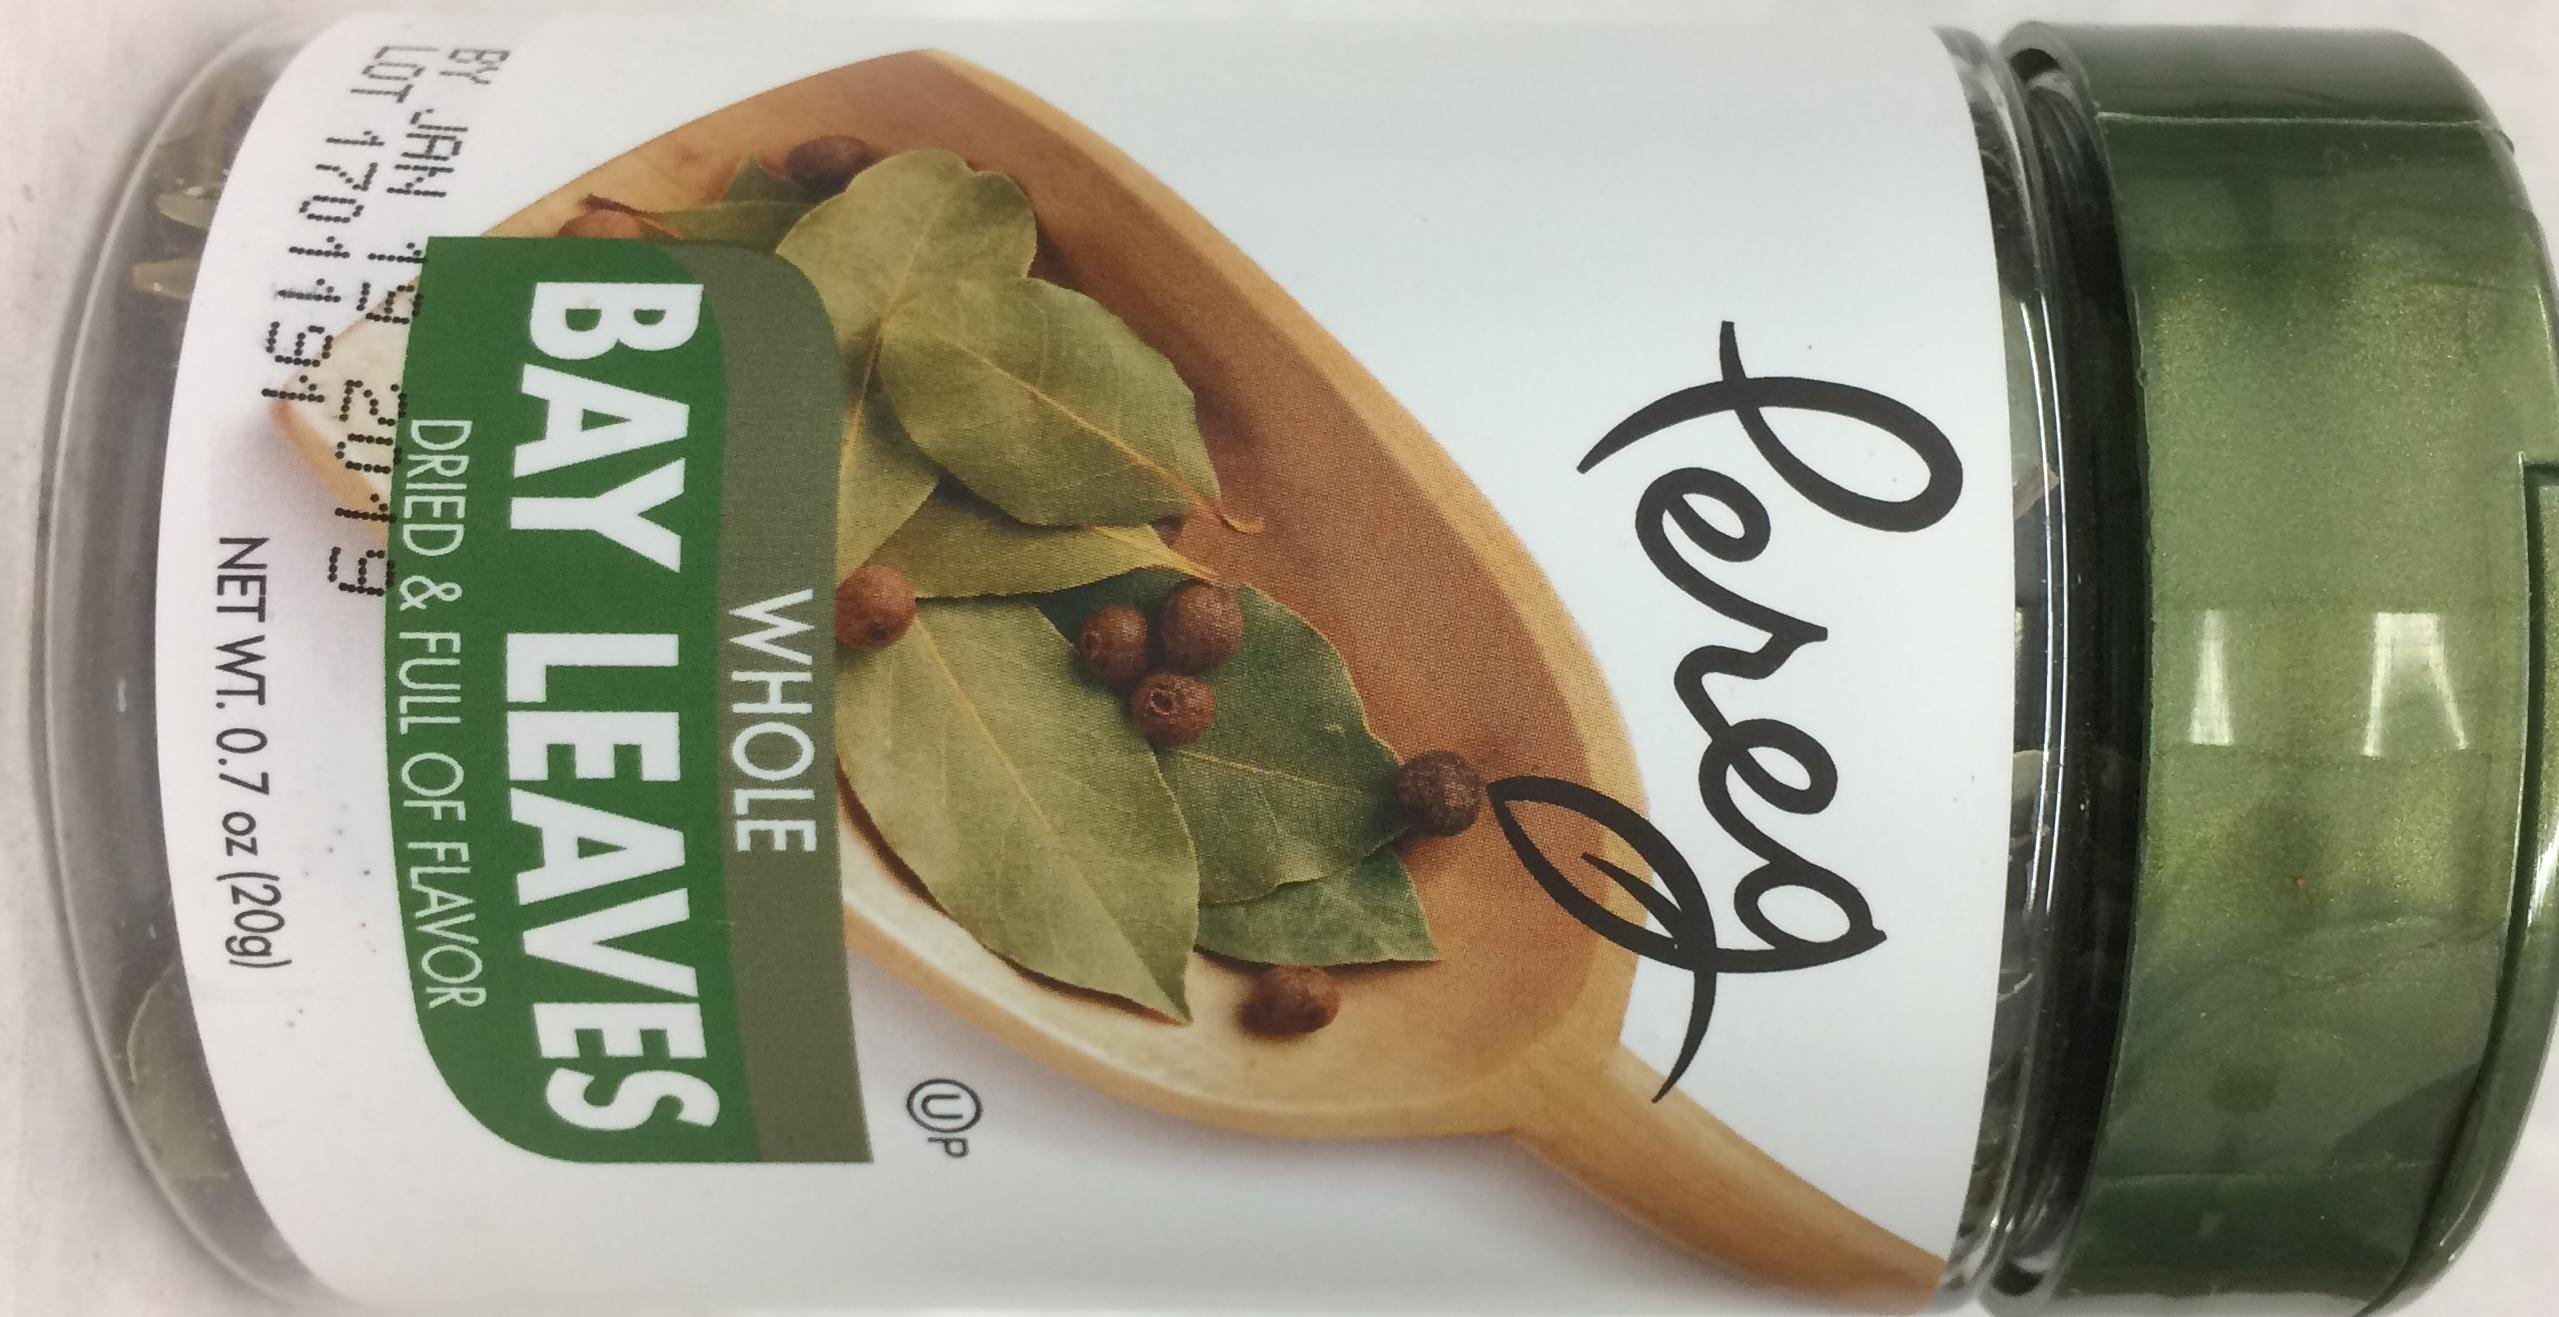 Pereg Whole Bay Leaves Kosher For Passover 0.7 Oz. Pack Of 1.